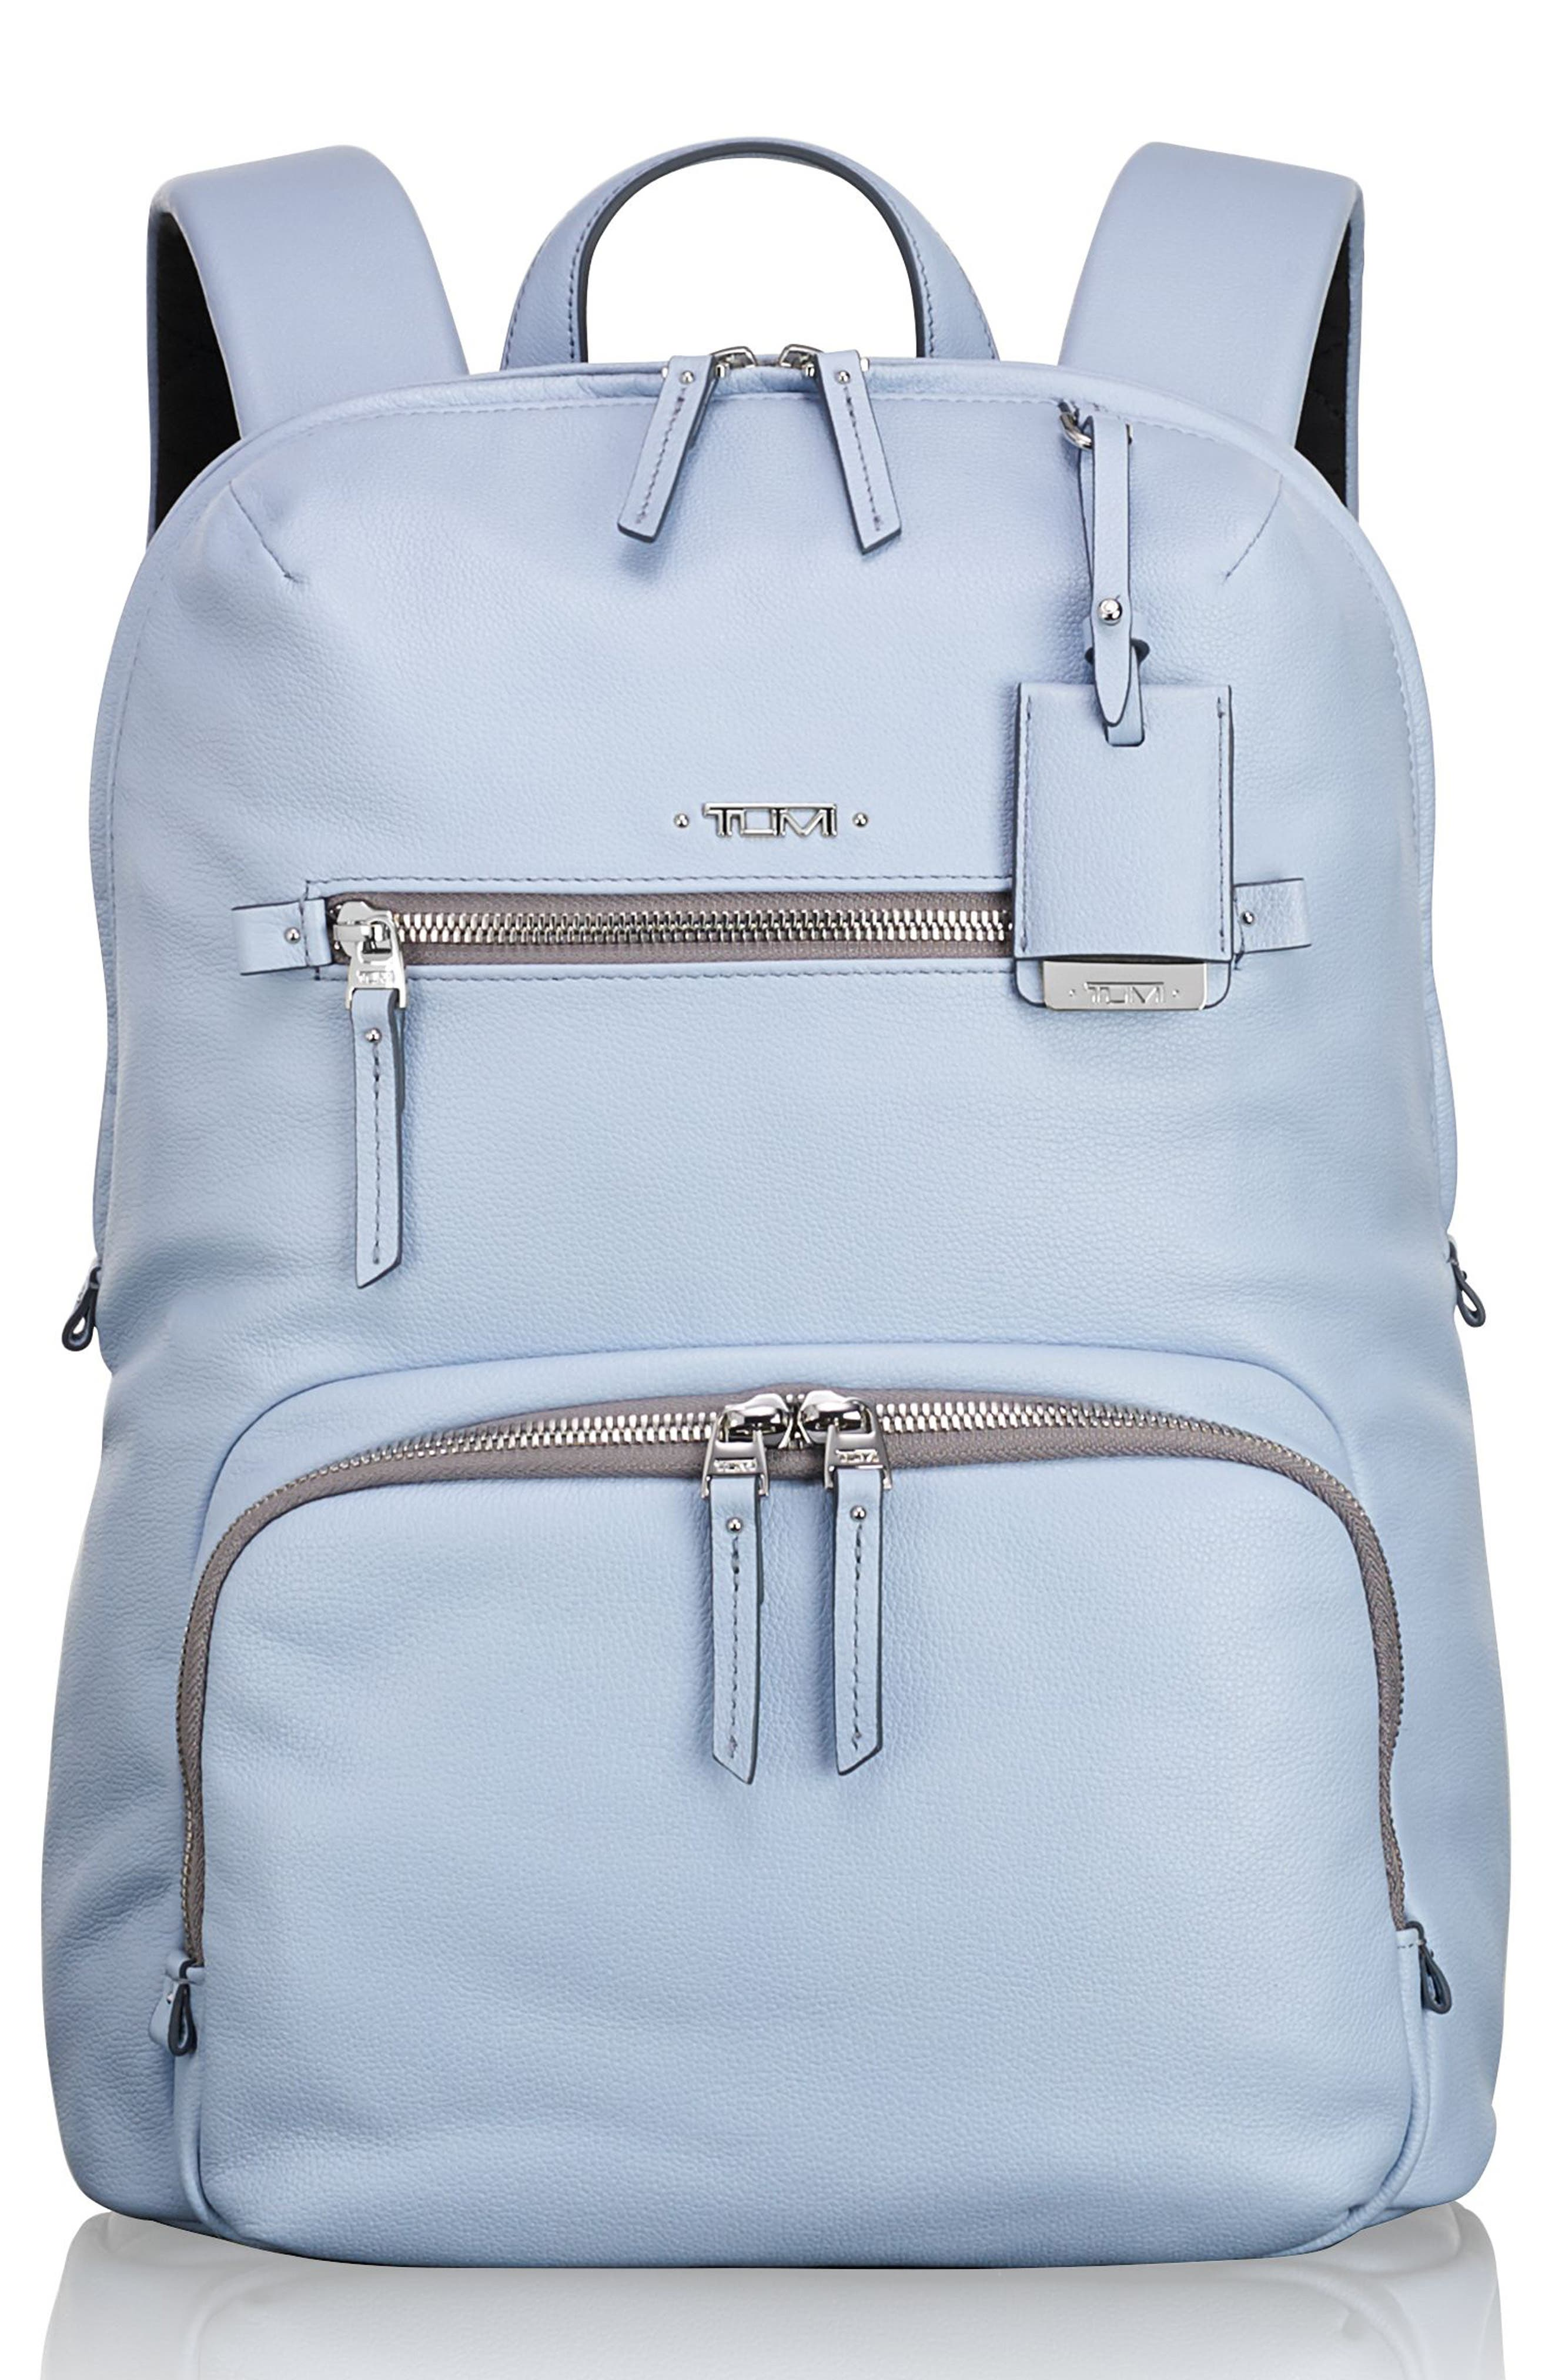 Tumi Voyageur Halle Leather Backpack (Limited Edition)